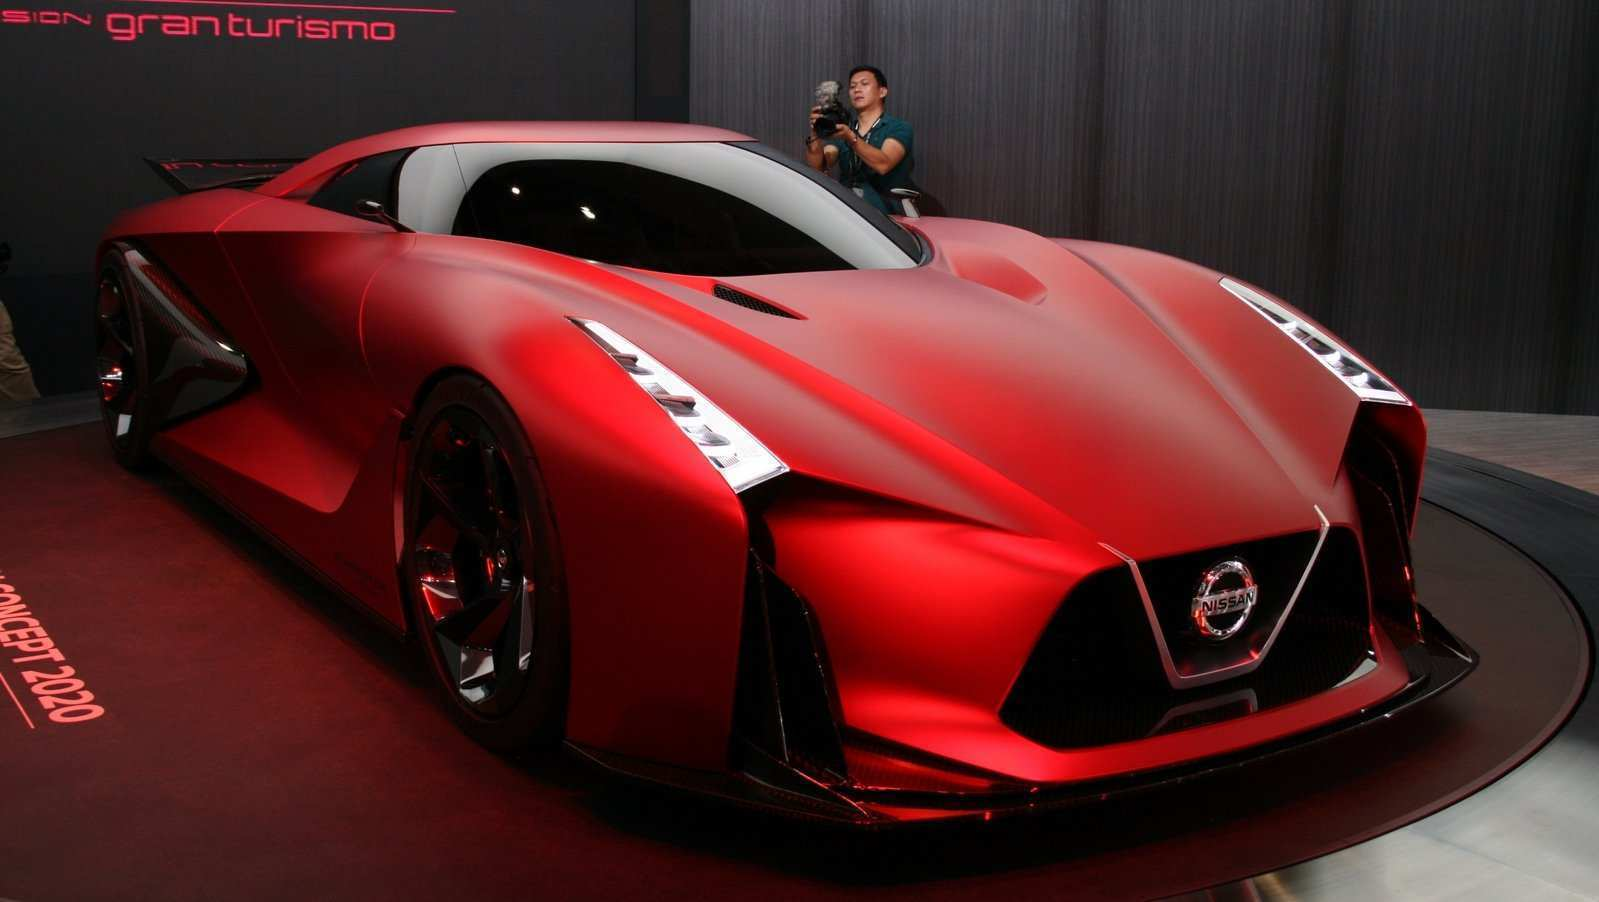 19 New Nissan Concept 2020 Top Speed Price And Release Date